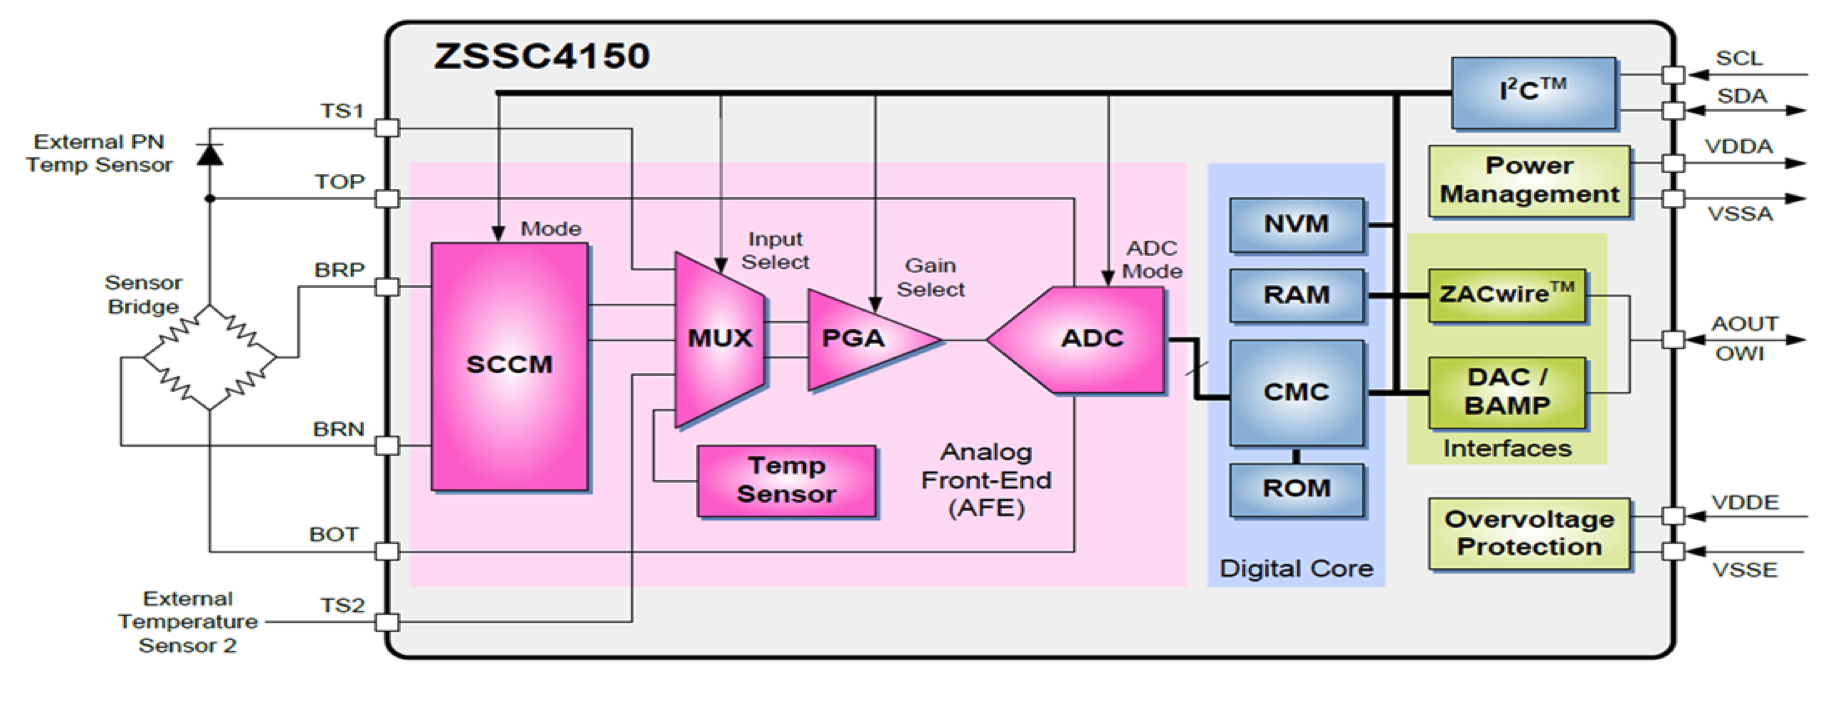 zssc4150-block-diagram